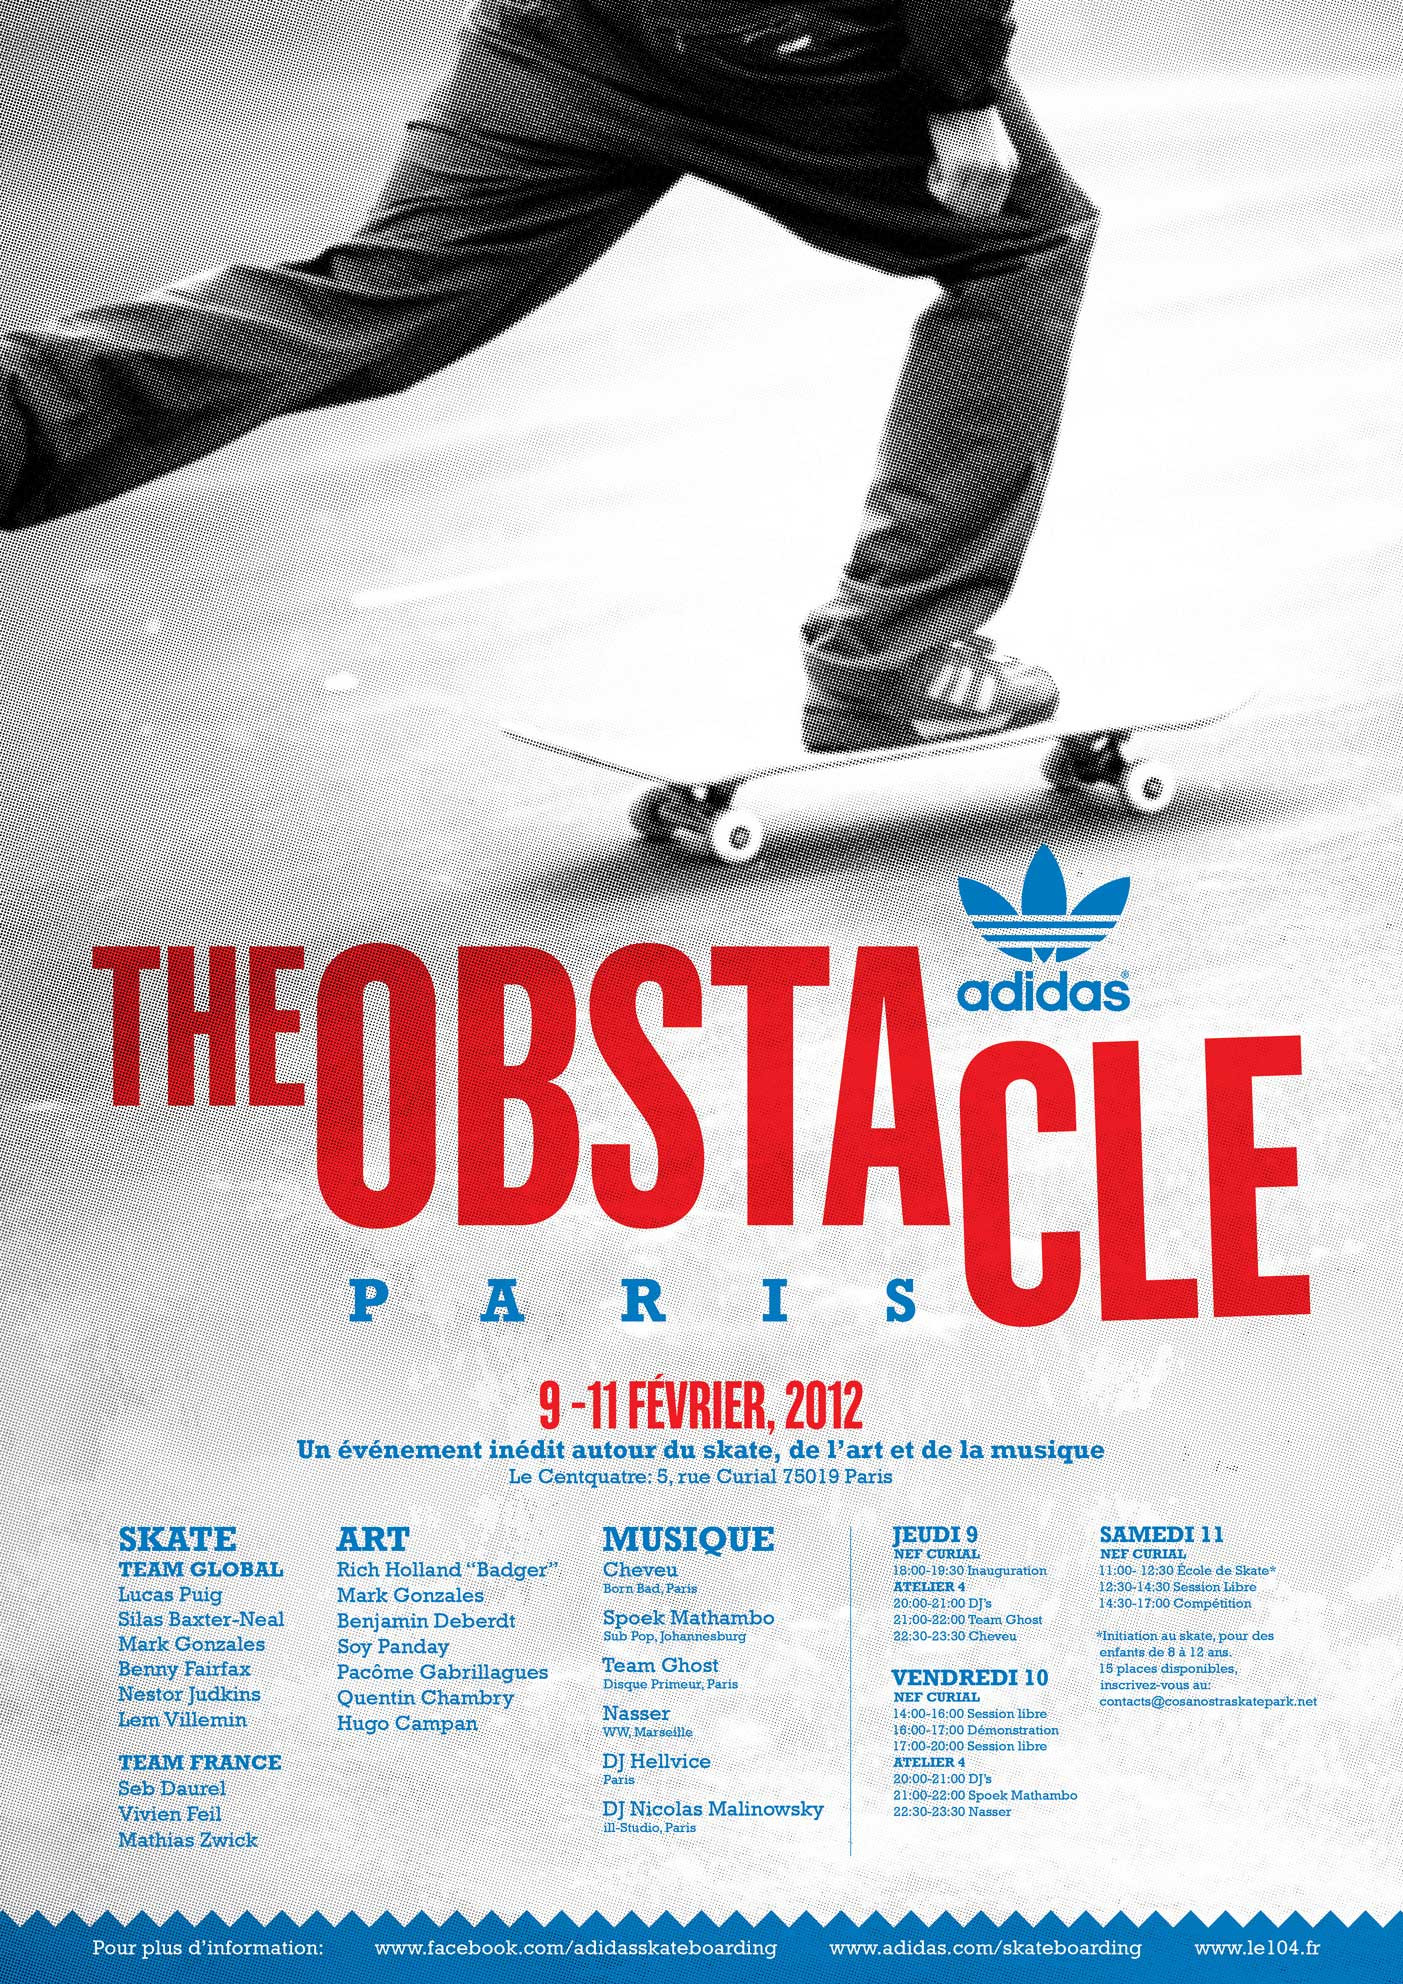 adidas-TheObstacleParis-Poster